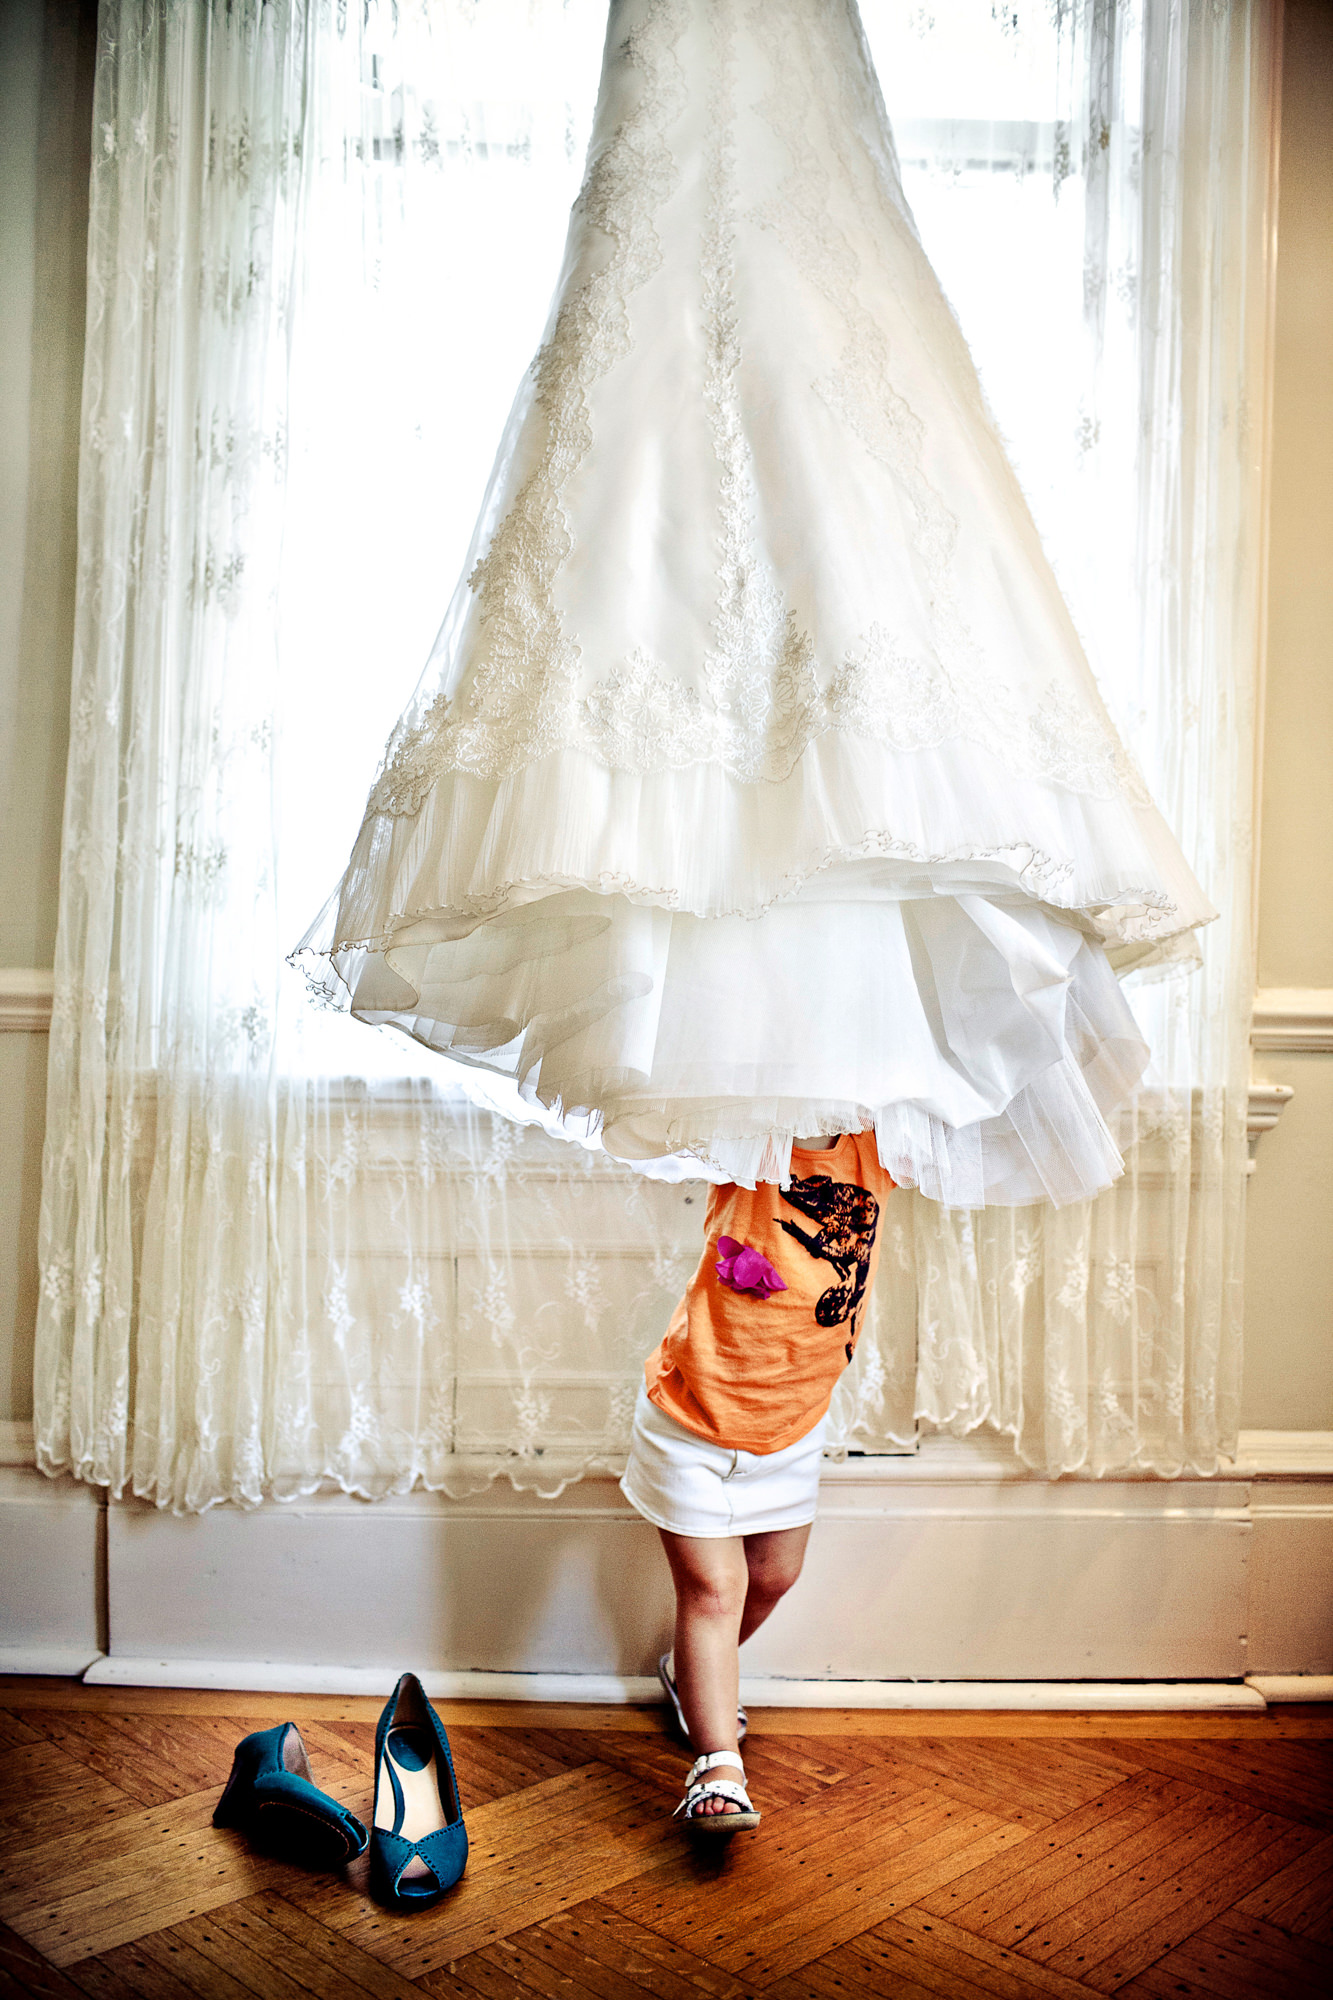 Hilarious kid under bridal gown - photo by Jag Studios